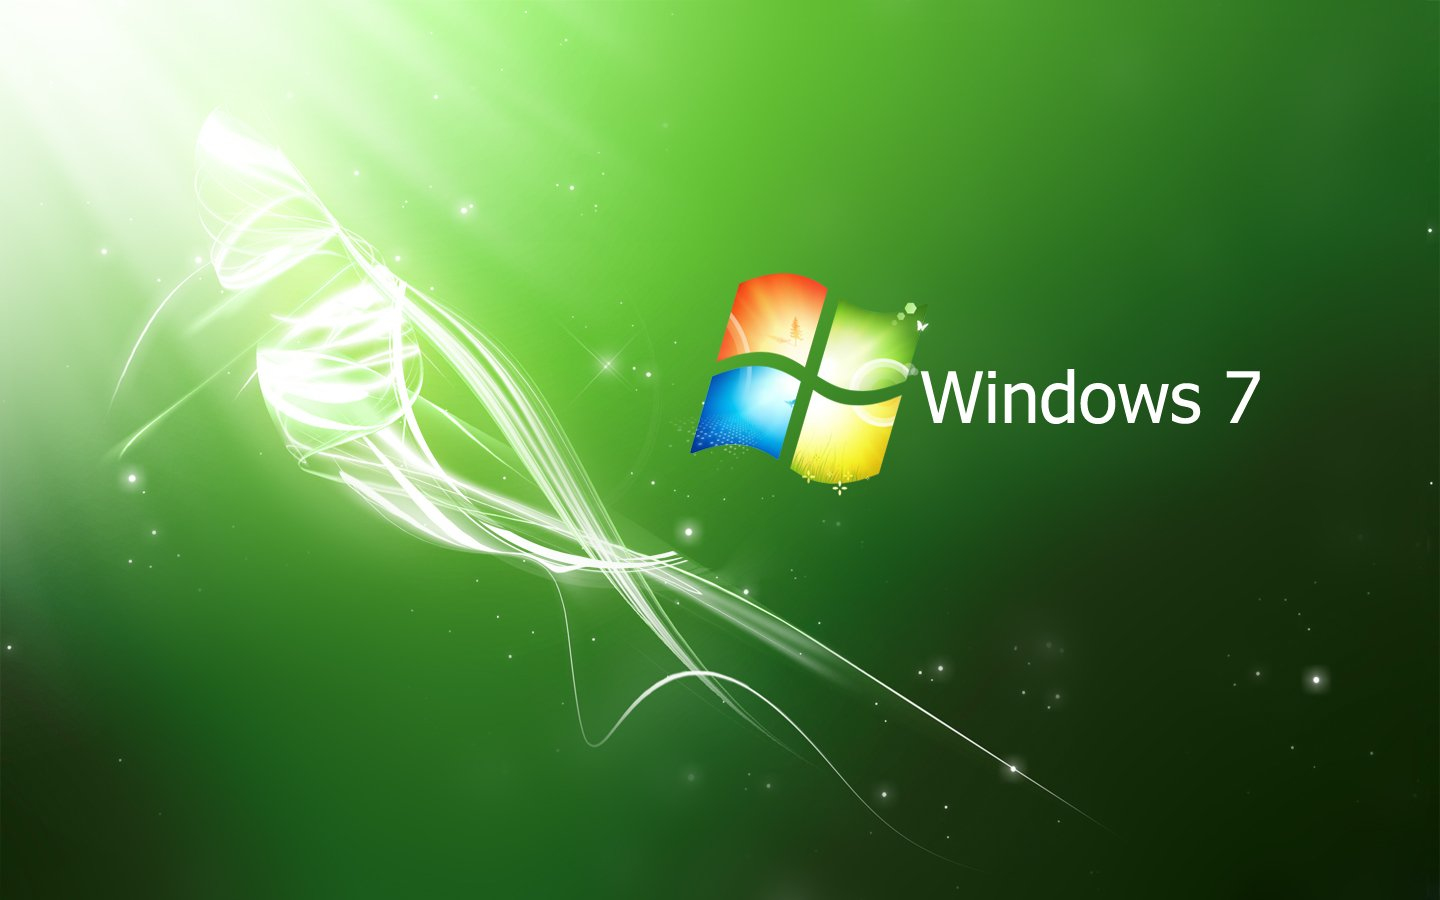 Download Wallpaper Windows 7 Crystal Pack Blue Green Red Hd